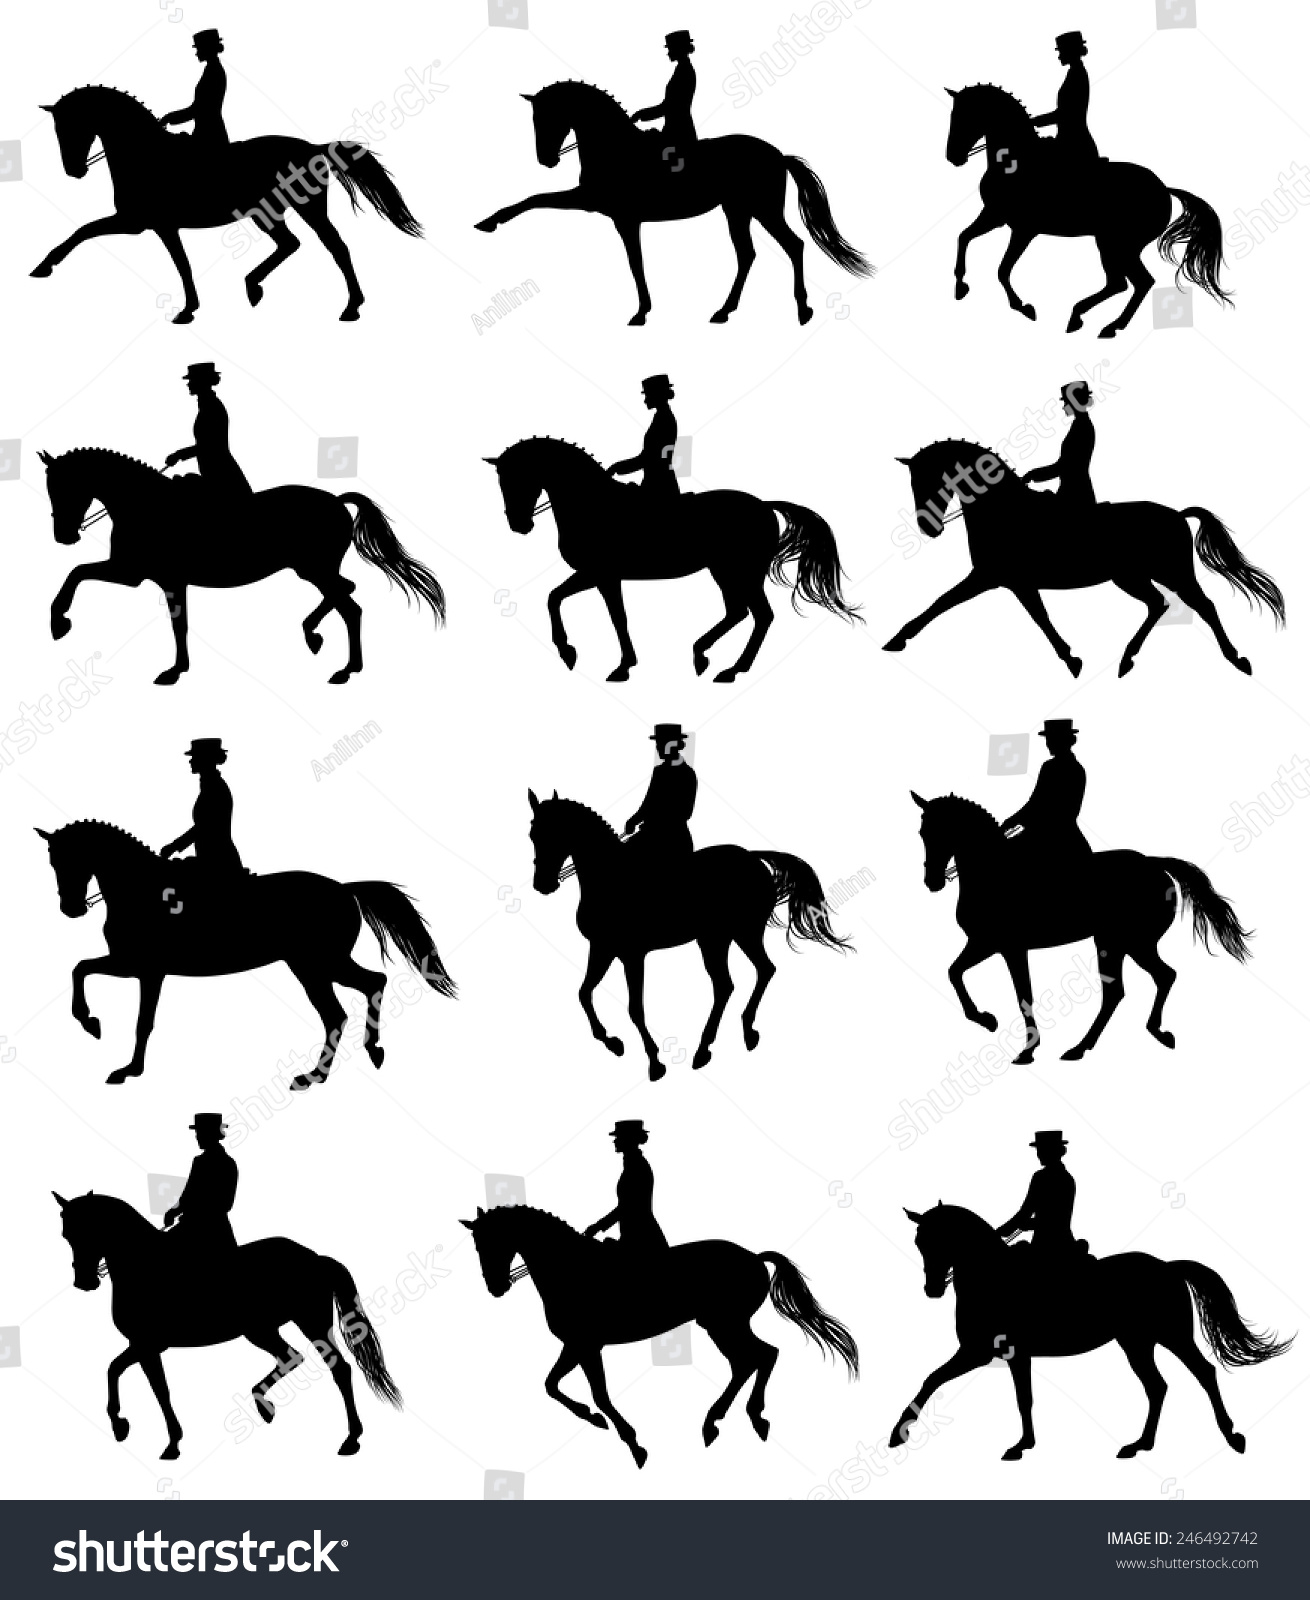 12 Silhouettes Horses Rider Performing Dressage Stock ...